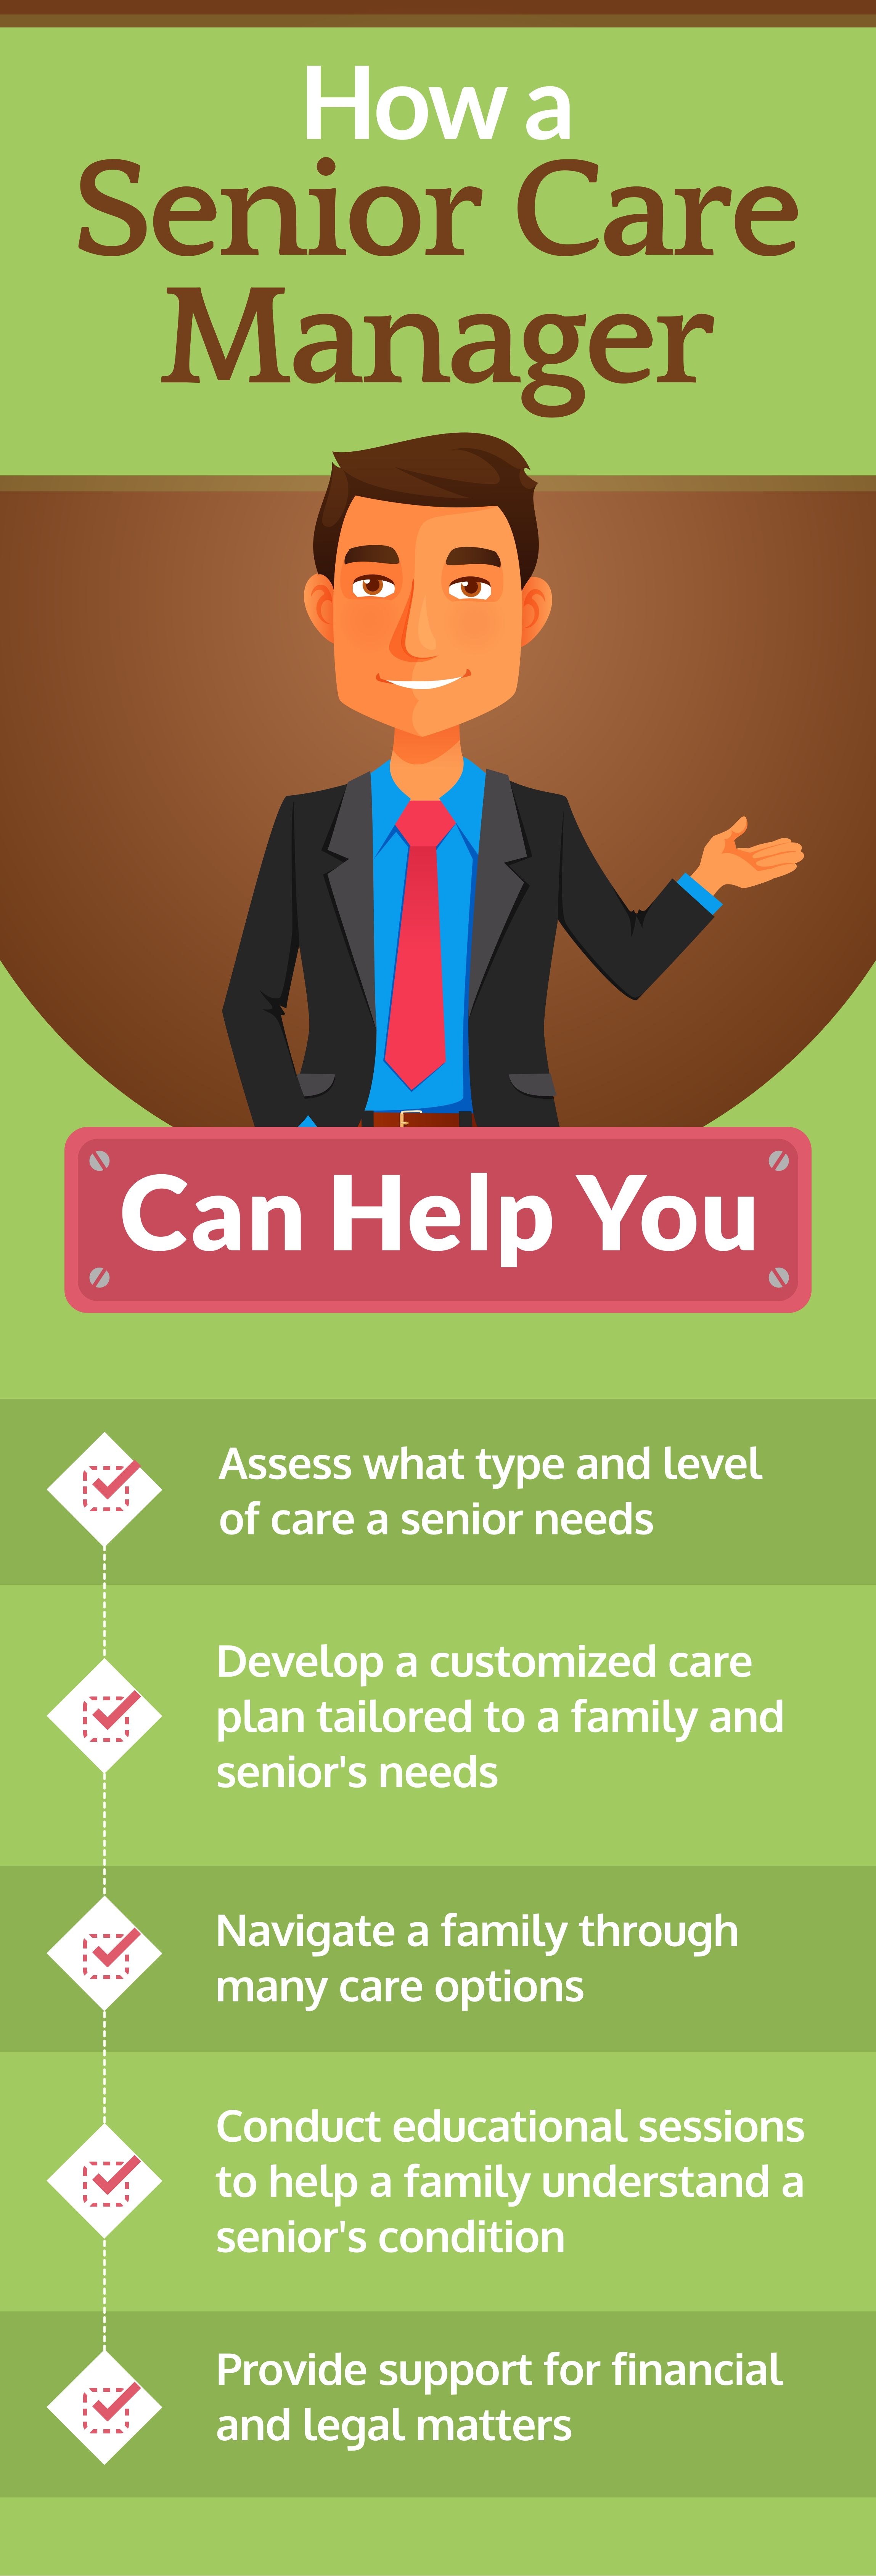 Fall Prevention for Seniors Tips to Prevent Falls at Home